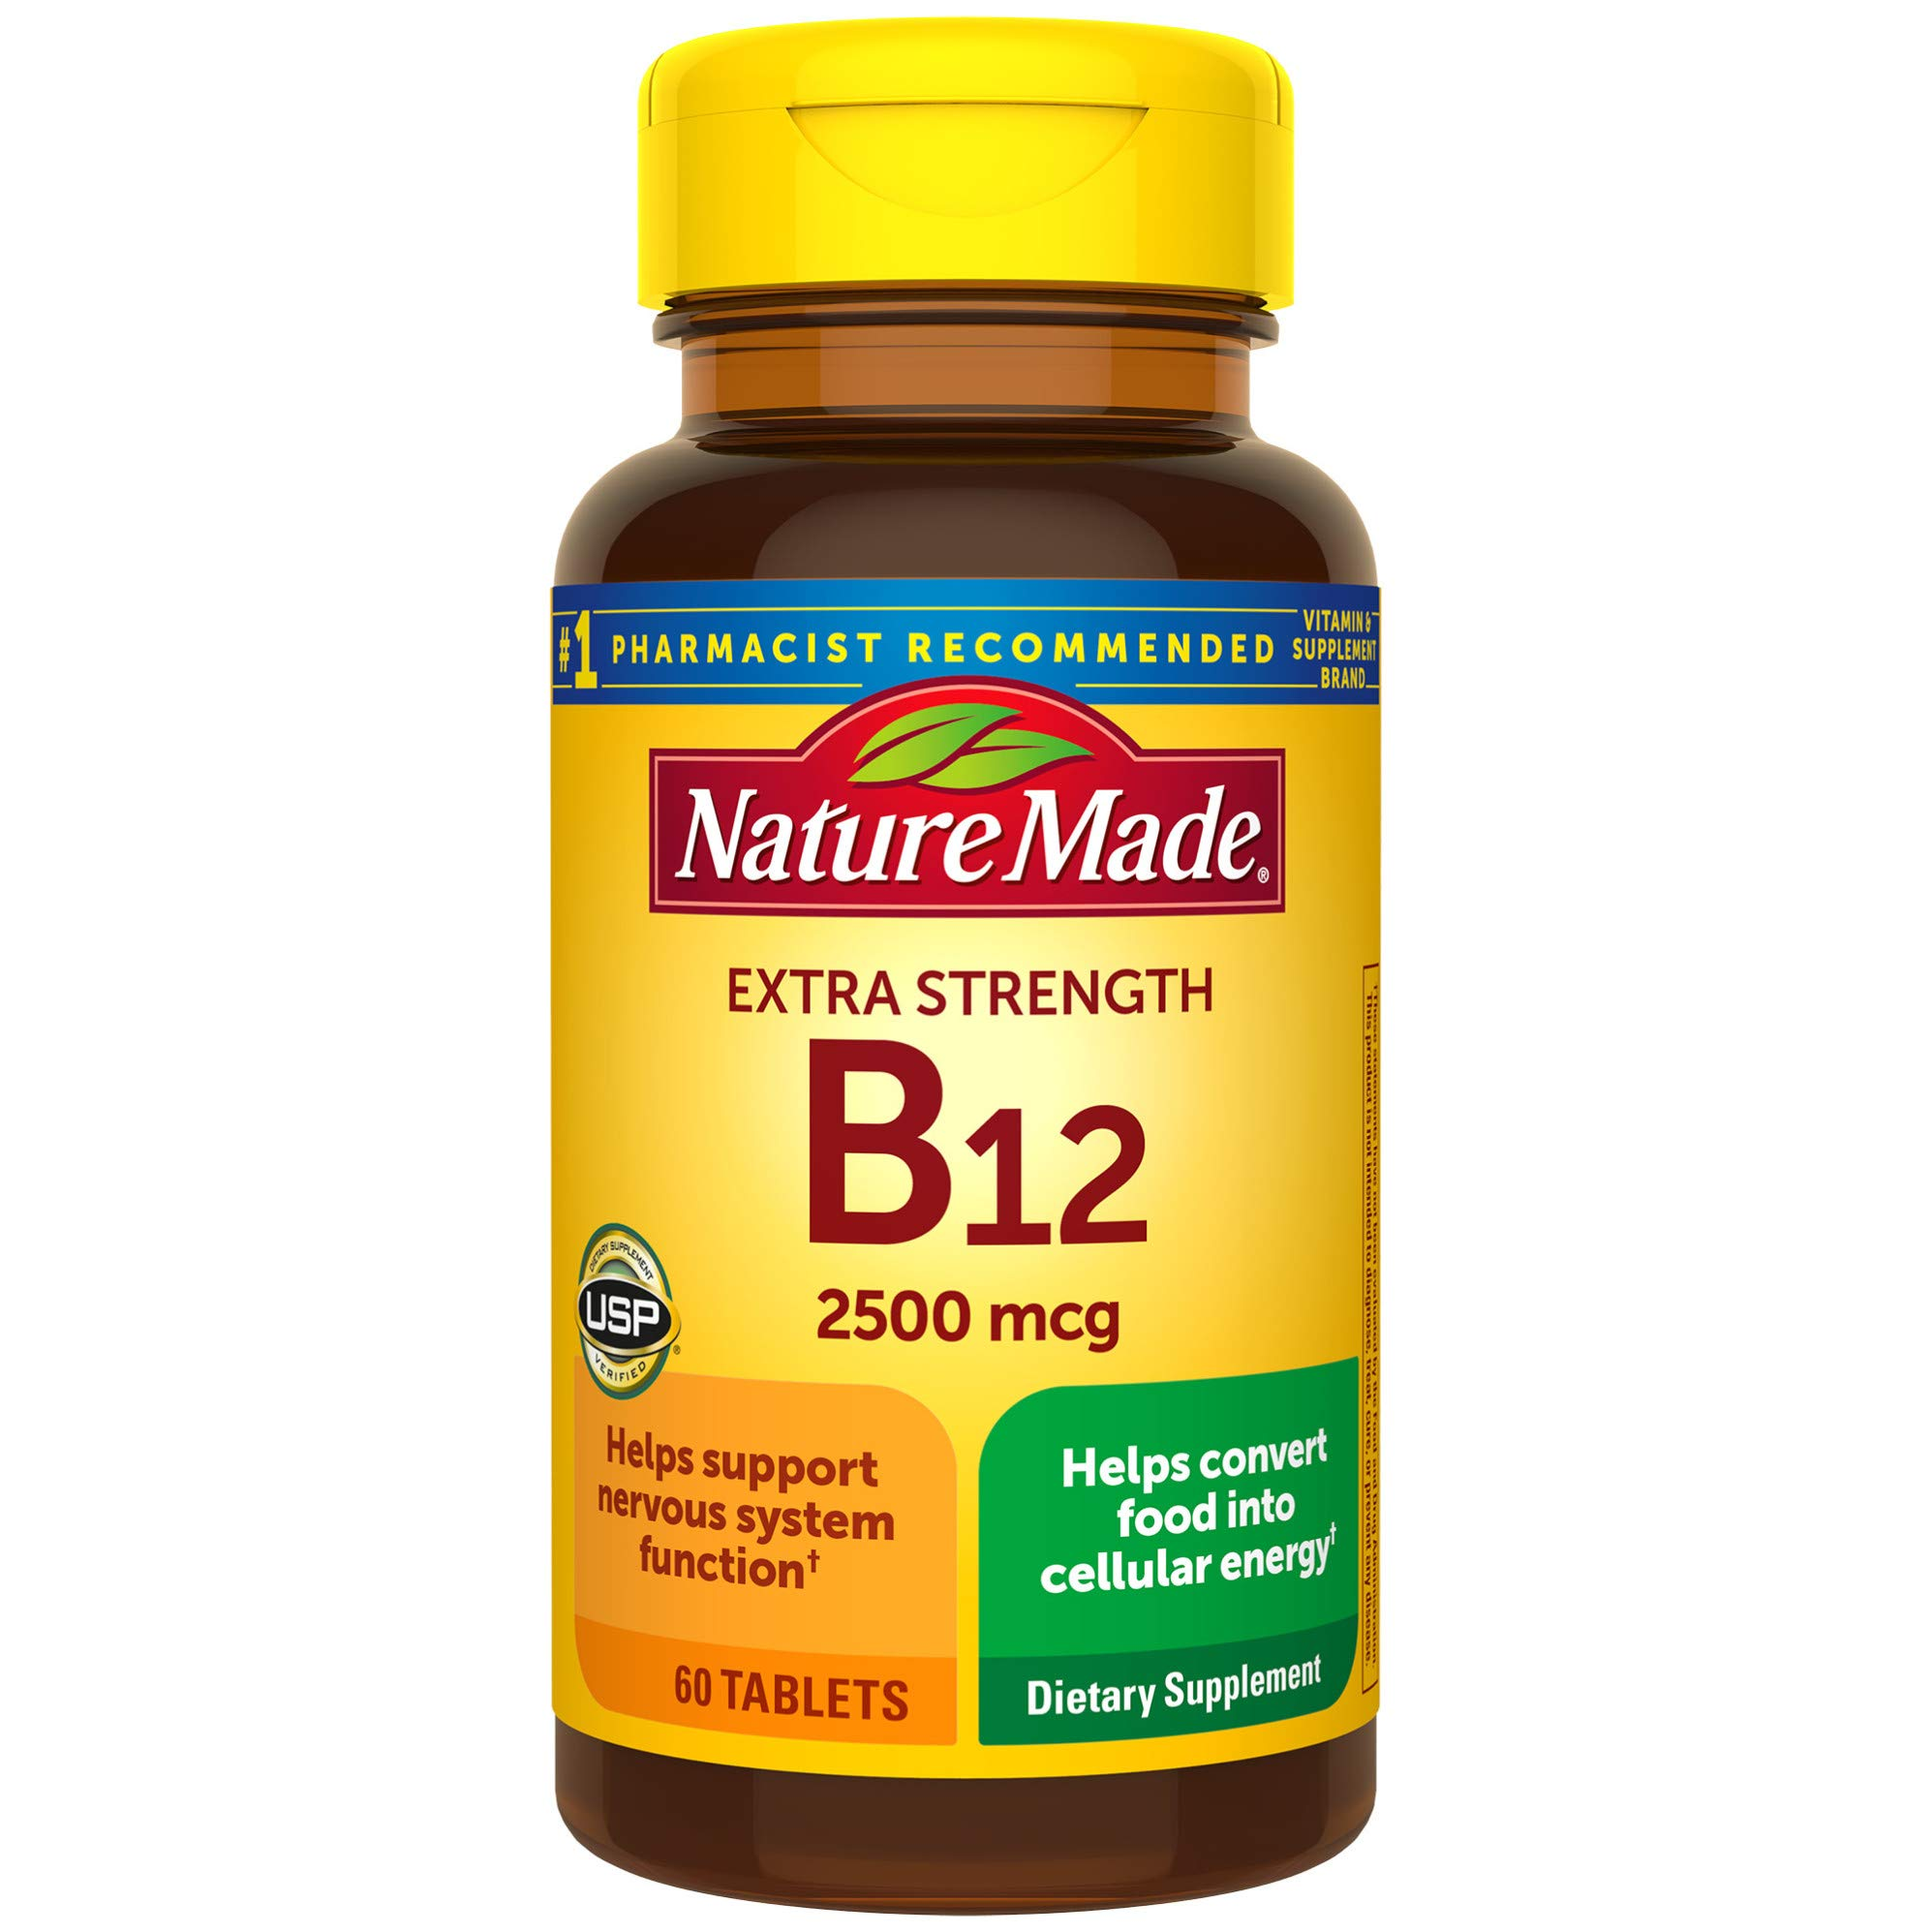 Nature Made Extra Strength Vitamin B12 2500 mcg Tablets, 60 Count